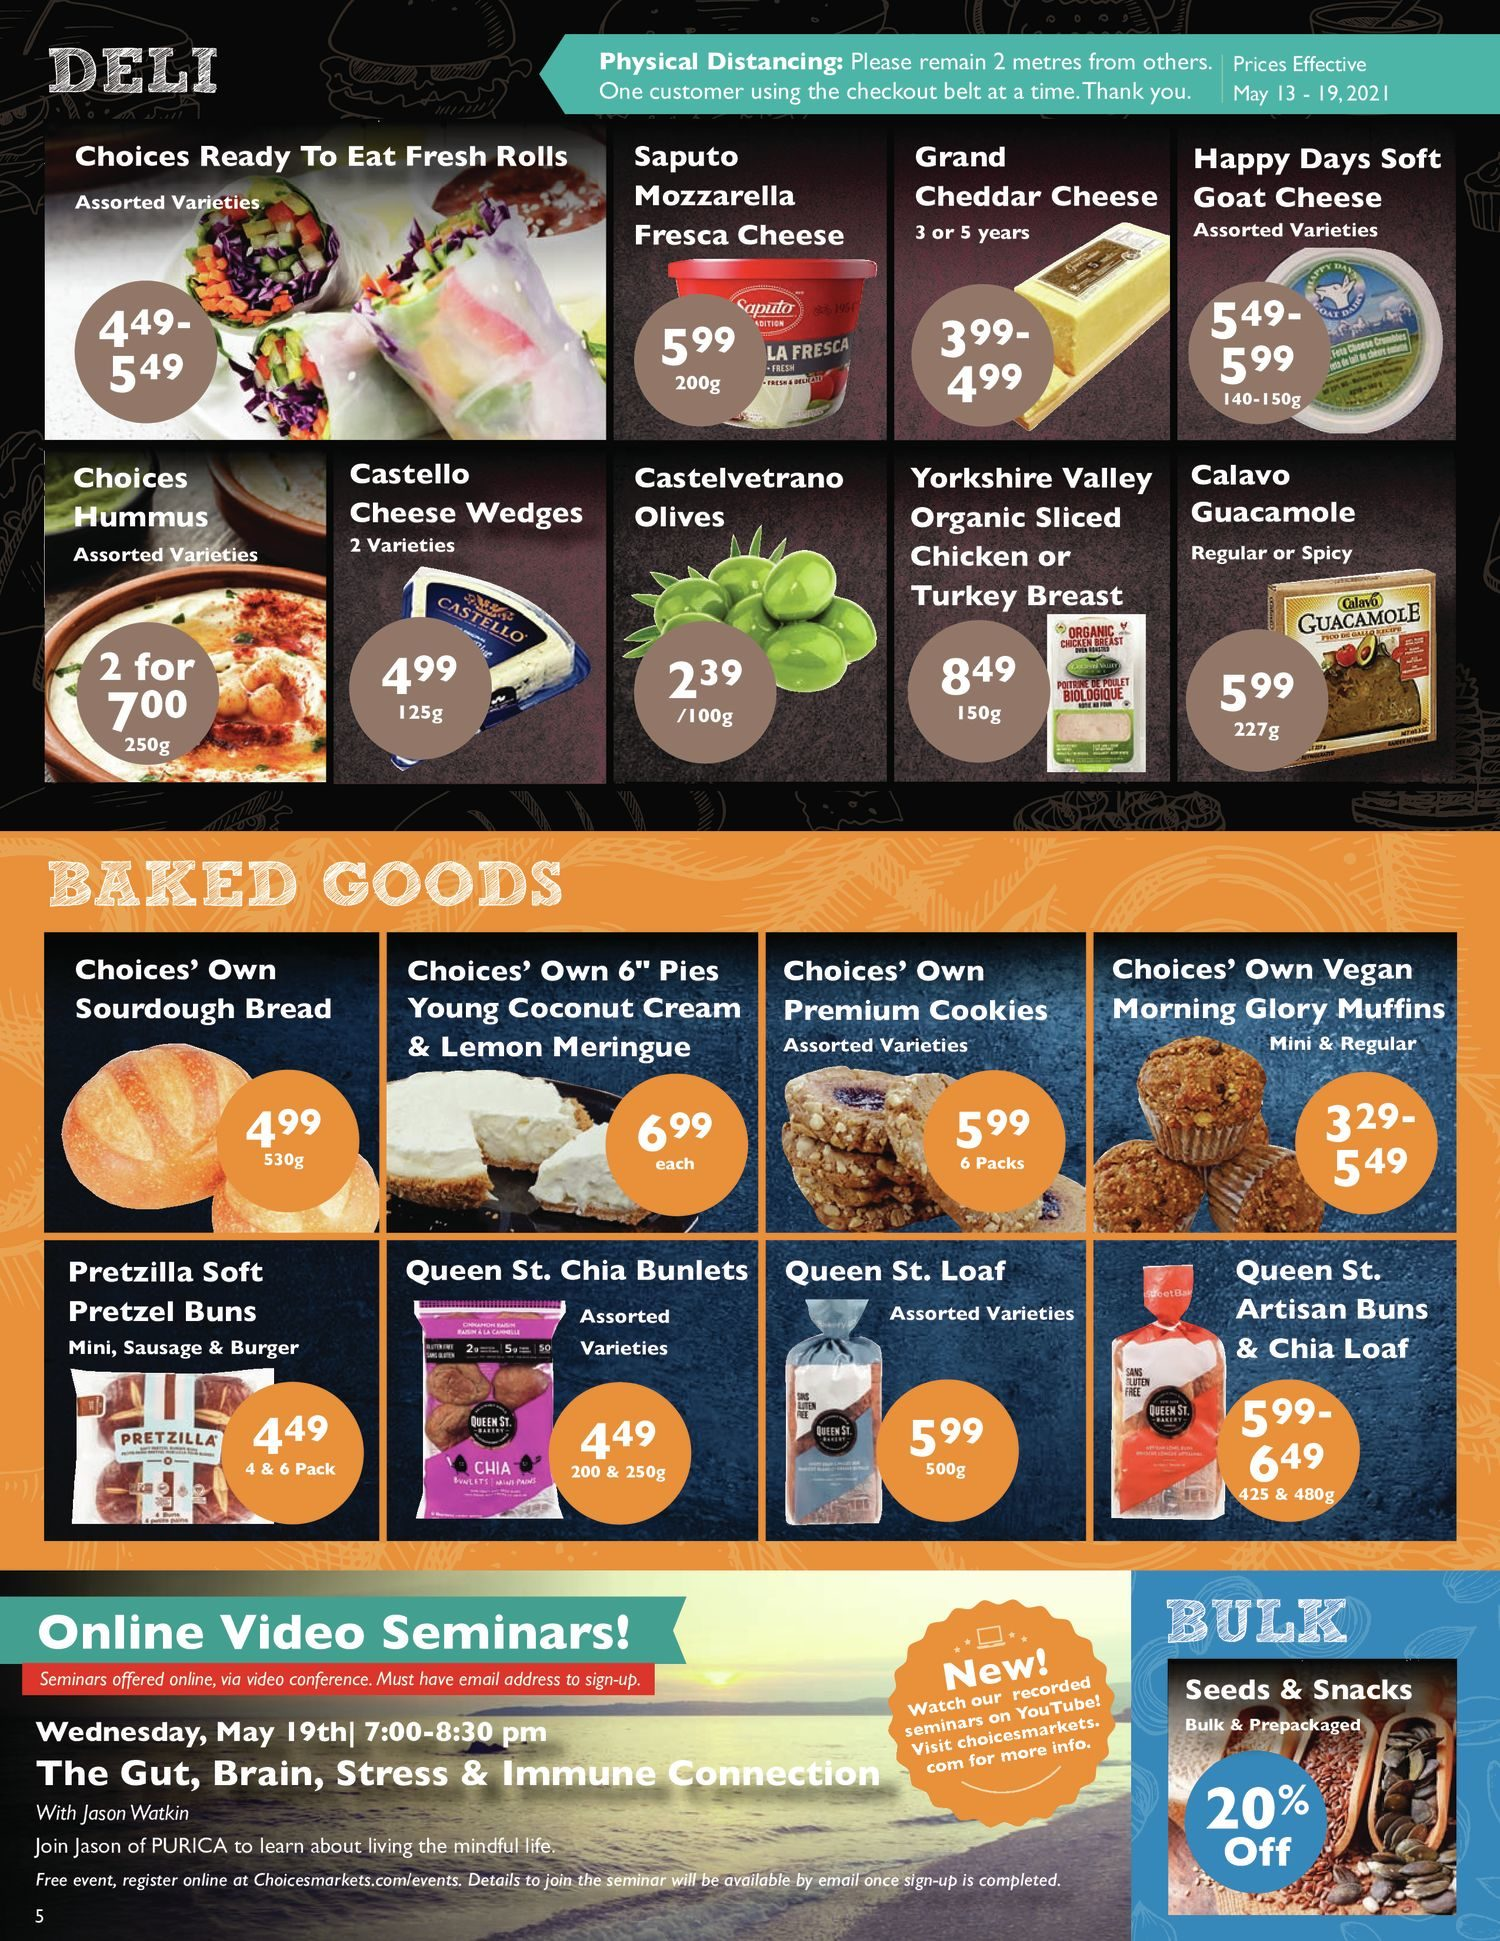 Choices Markets - Weekly Flyer Specials - Page 5